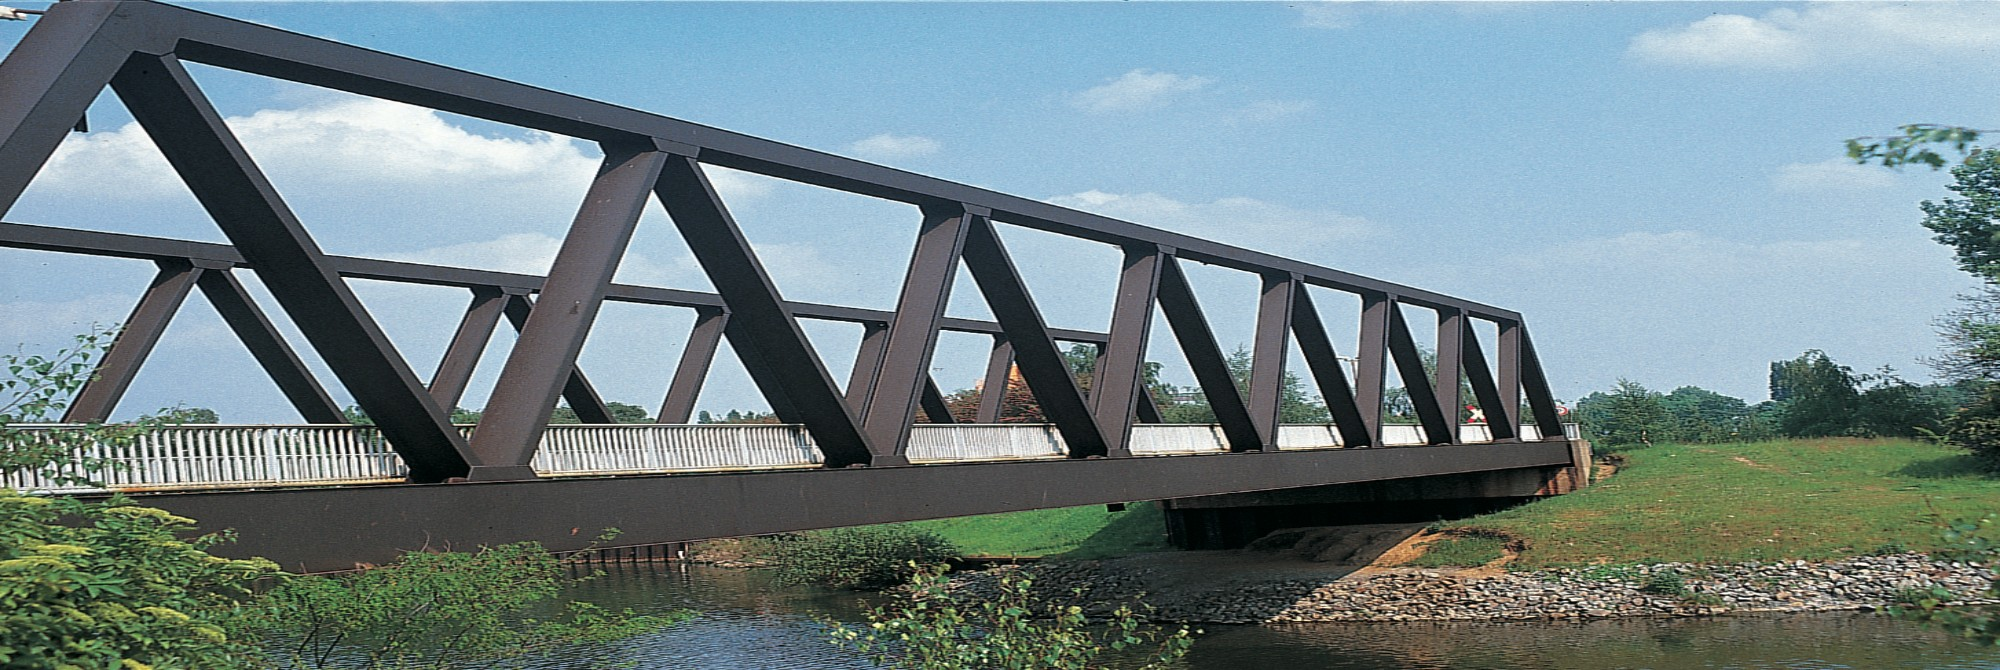 Structural steel: PATINAX®